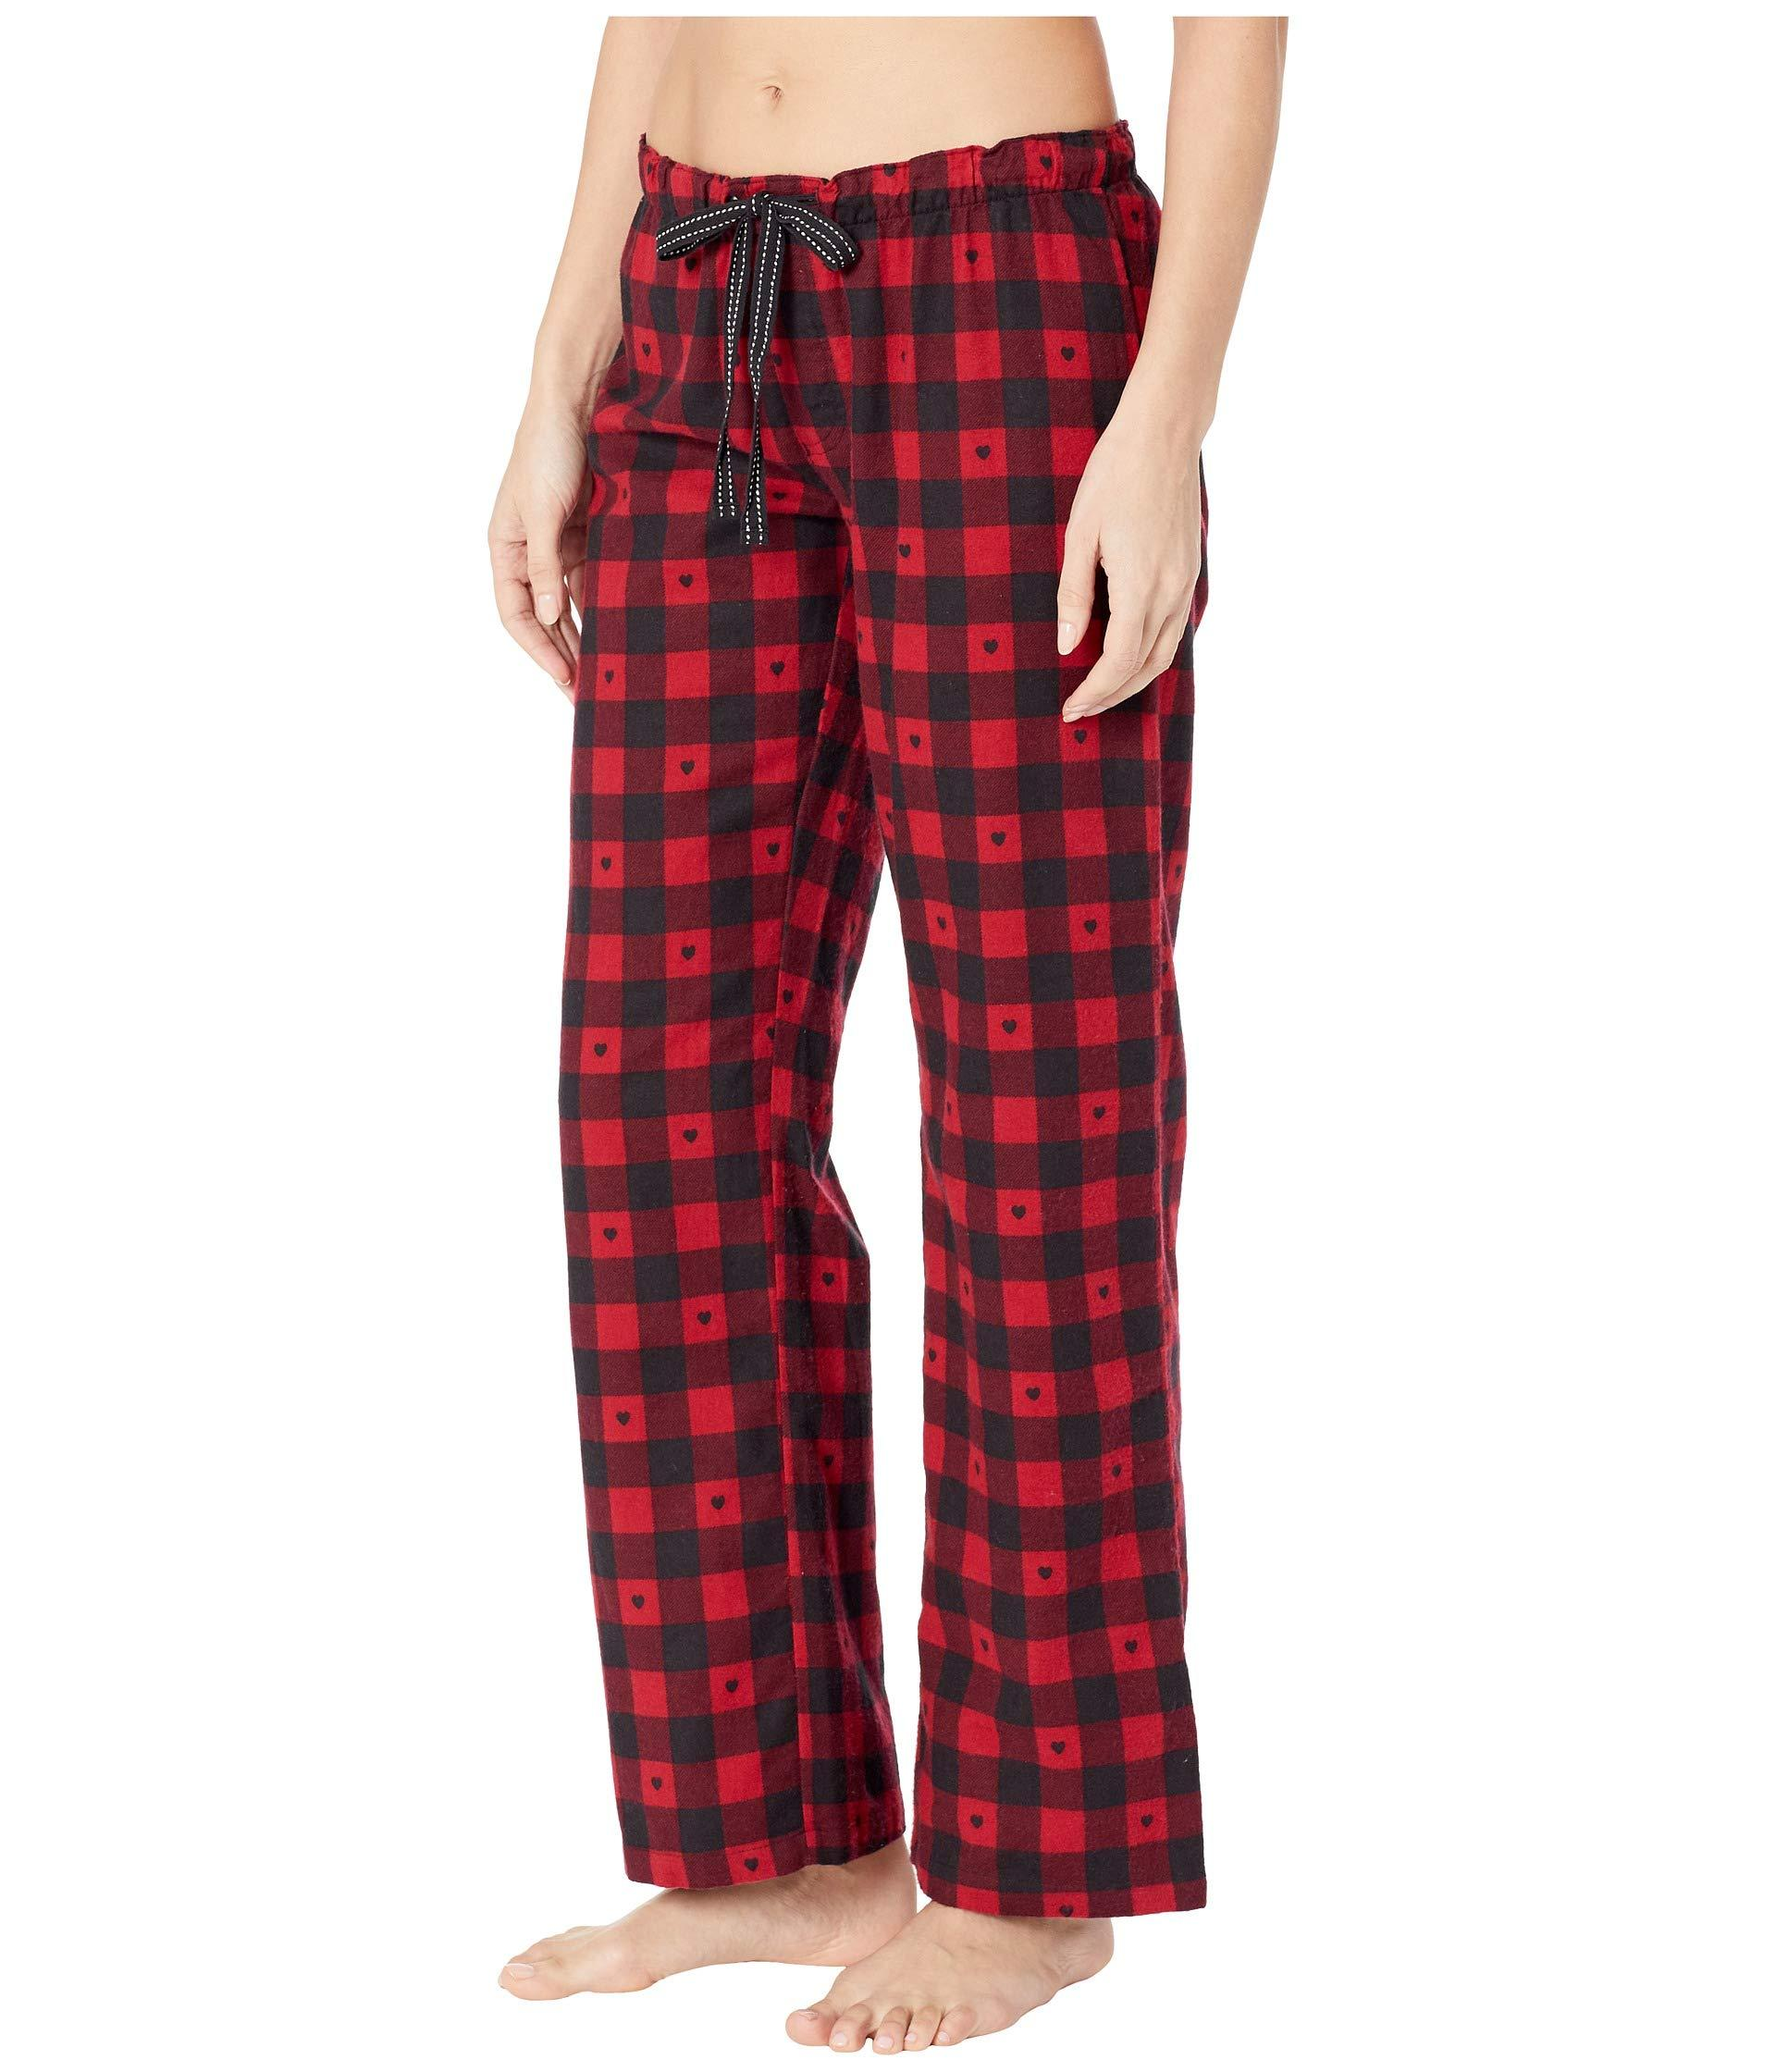 66489b2b955 Lyst - Pj Salvage True Love Heart Pants (red) Women s Pajama in Red - Save  26%